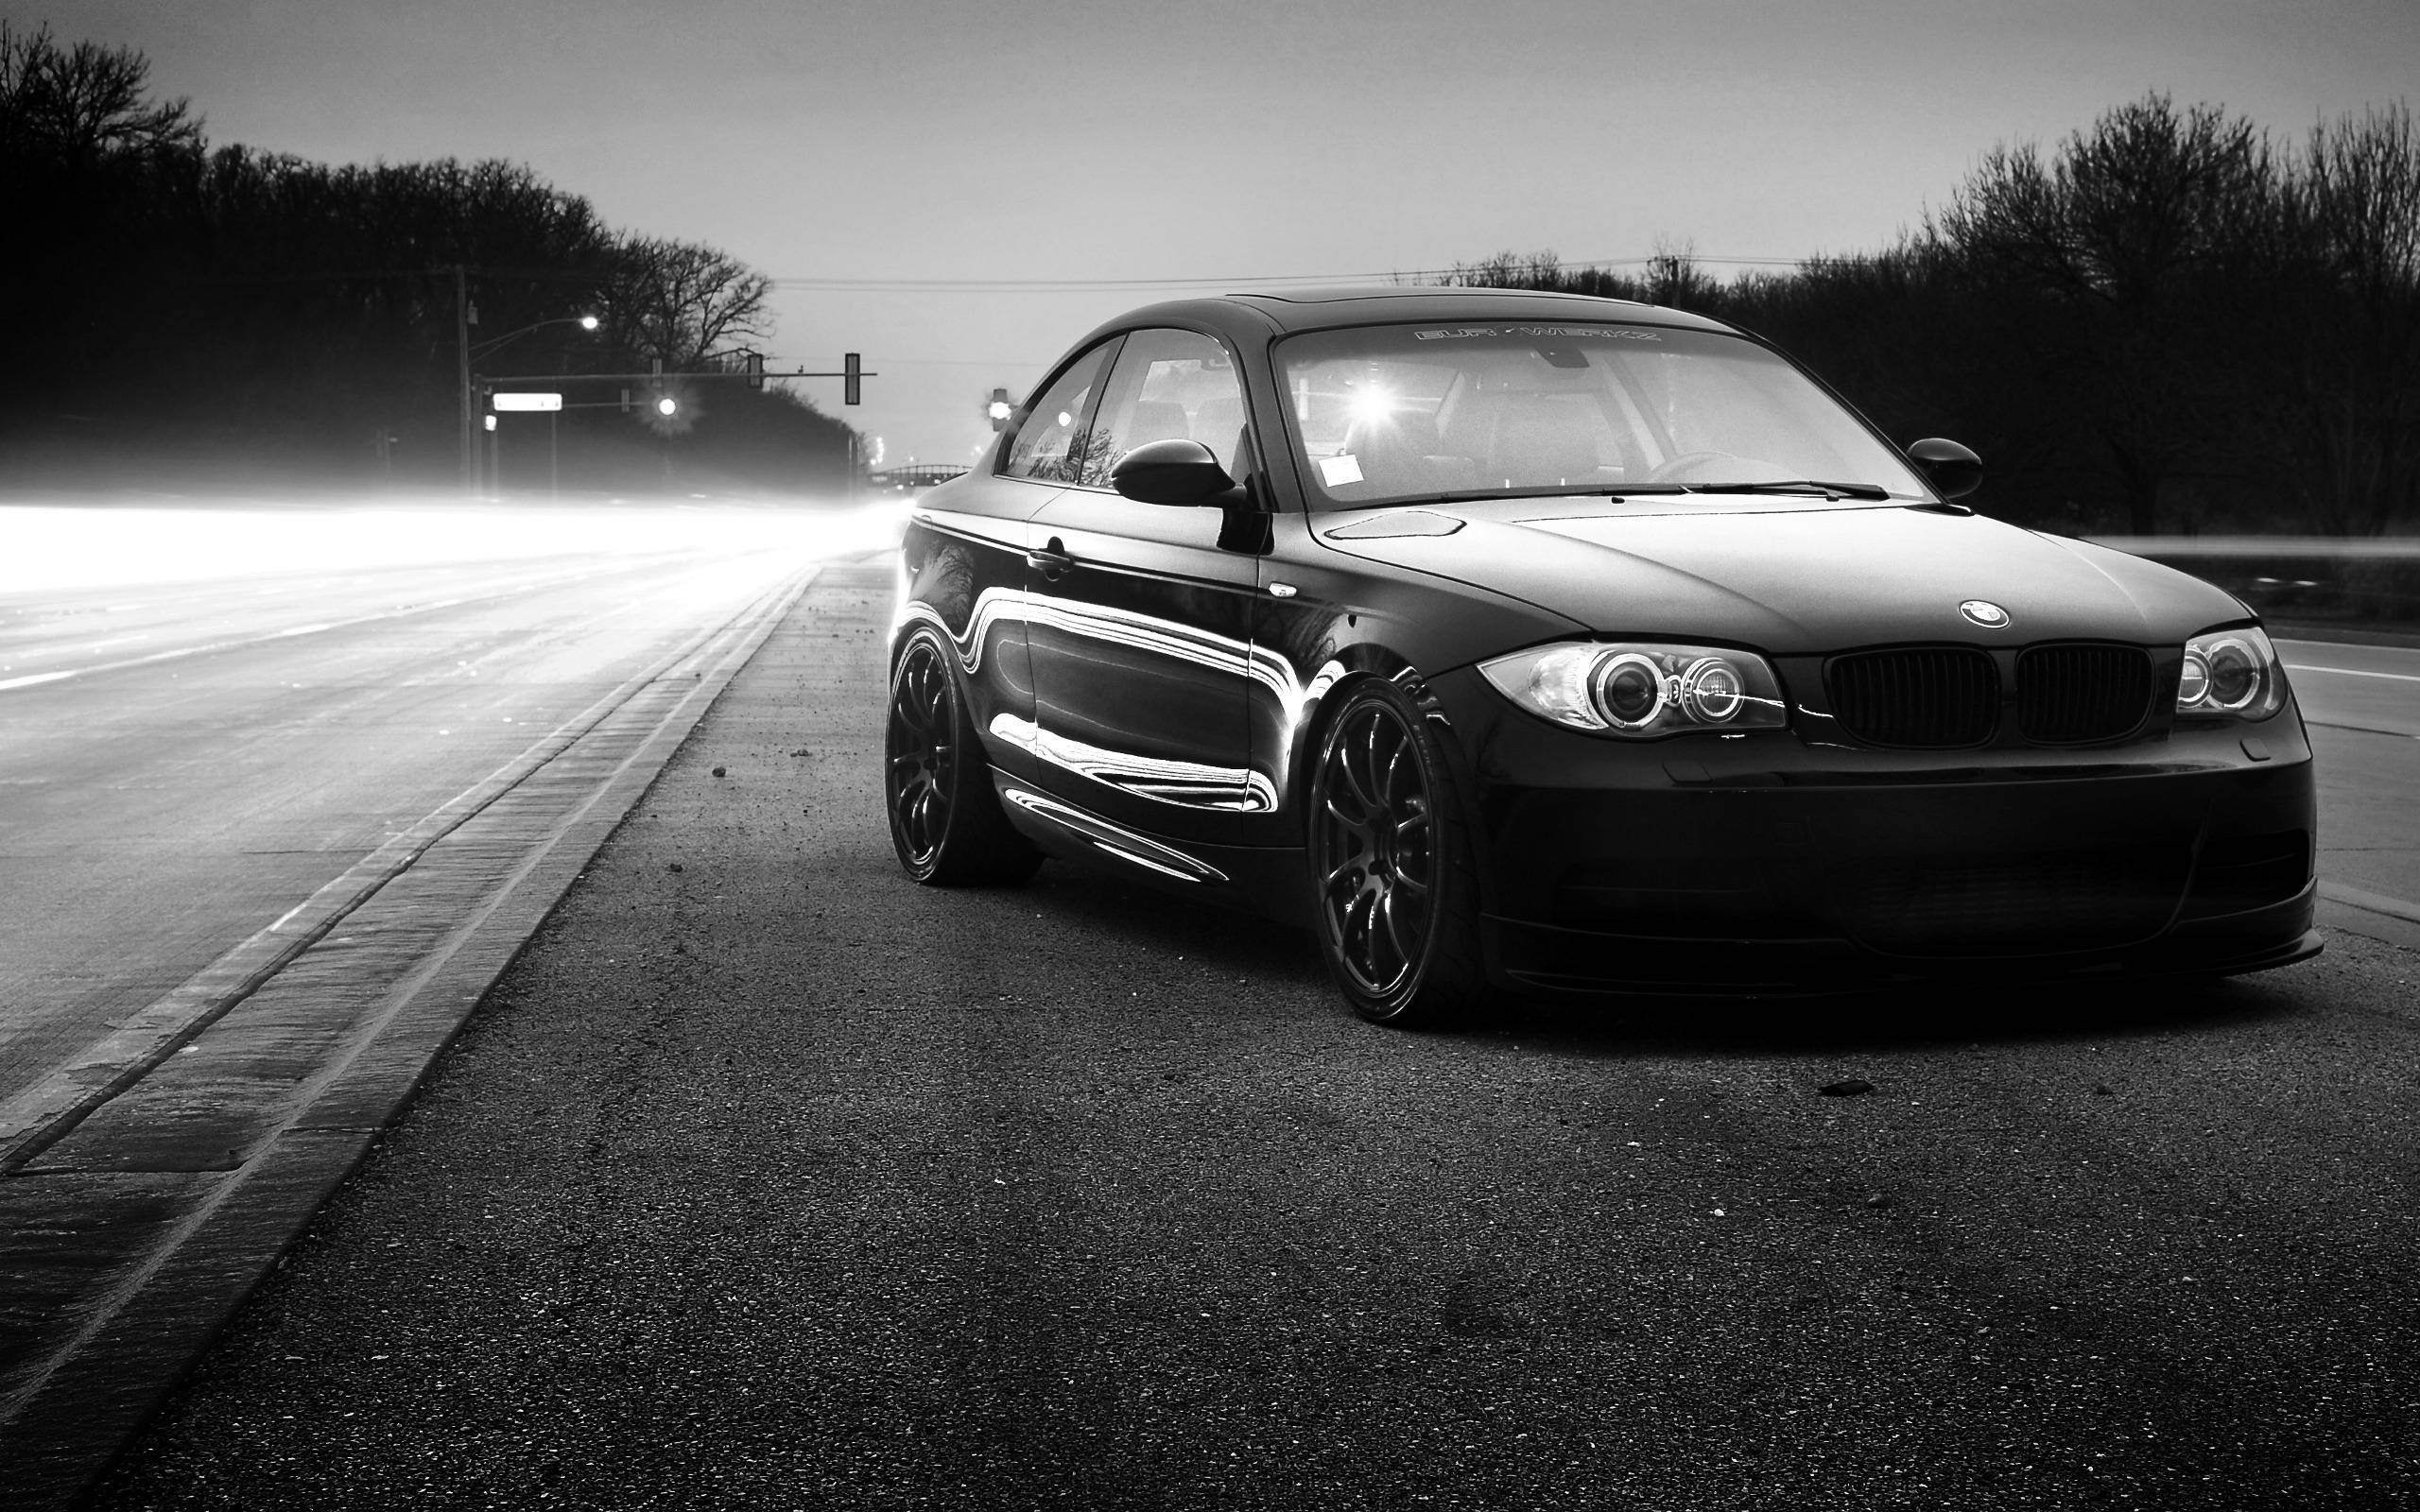 Bmw 135i Wallpapers Backgrounds Photos Images Stock